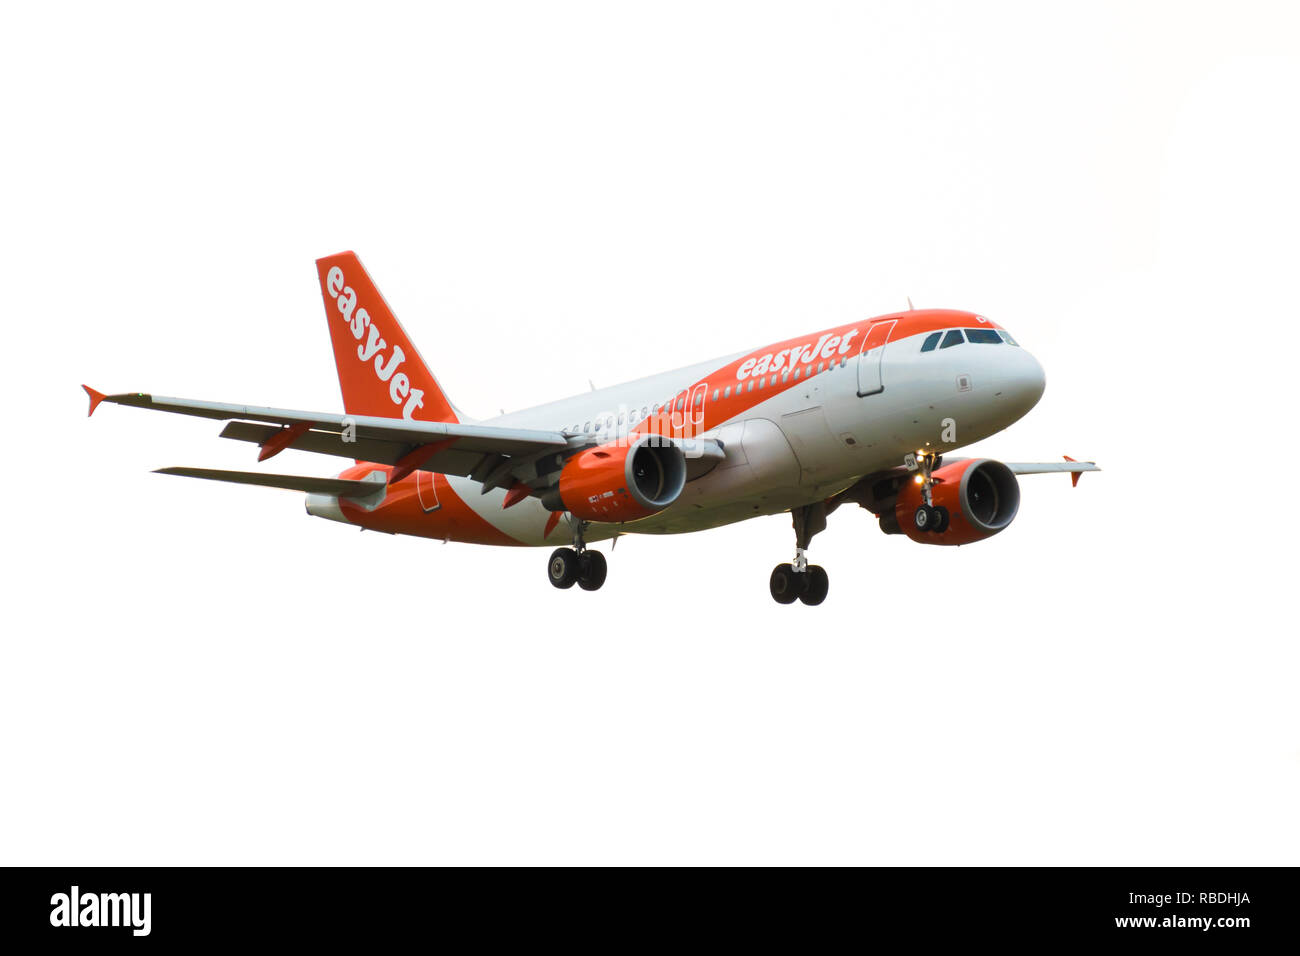 GATWICK AIRPORT, ENGLAND, UK – AUGUST 30 2018: An easyJet Airlines Airbus A319-100 plane comes in to land at London Gatwick Airport. Isolated on white - Stock Image